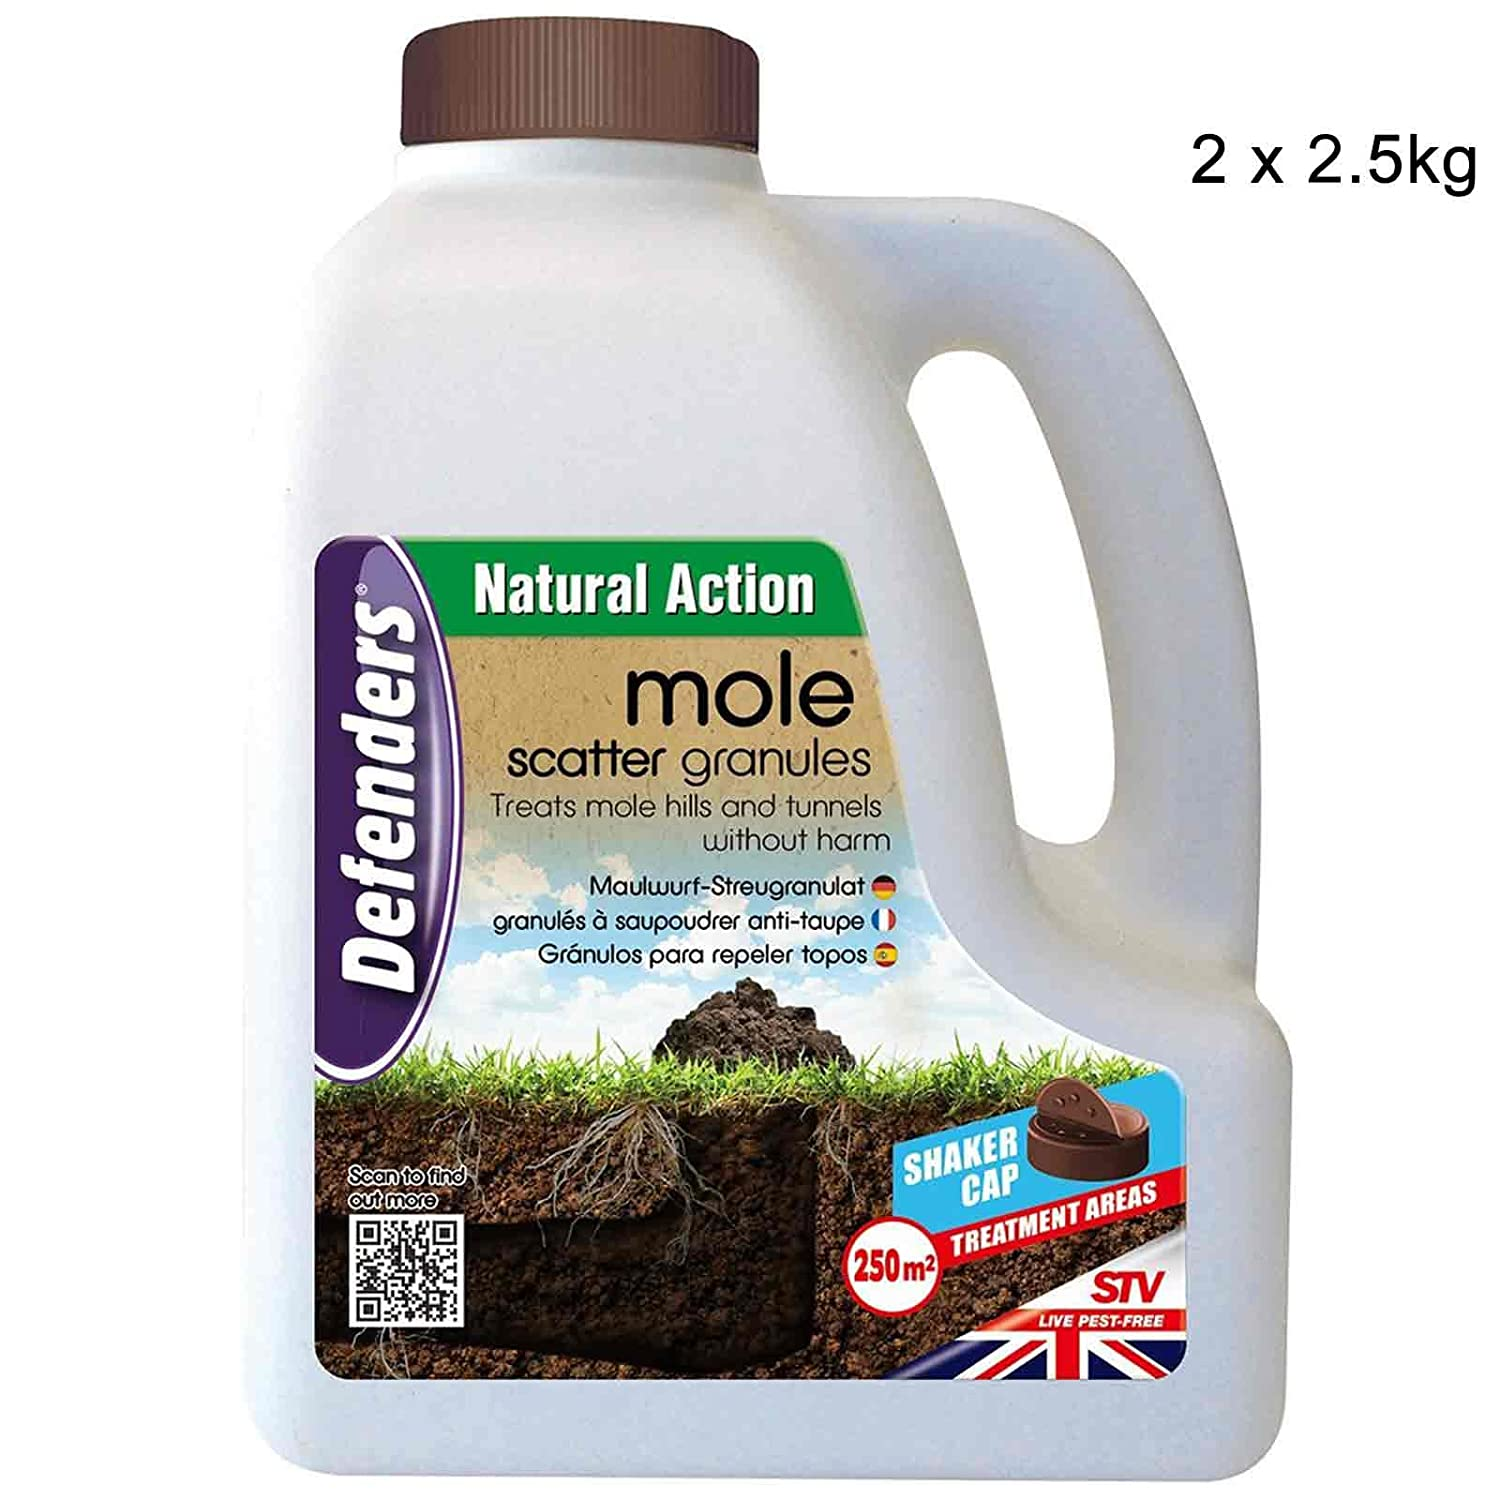 Defenders 2 x 2.5 kg Mole Scatter Granules (Humane, Natural Mole Deterrent, Use Year-Round, Covers Up to 250 sq m, Safe for Use Around Kids and Pets)